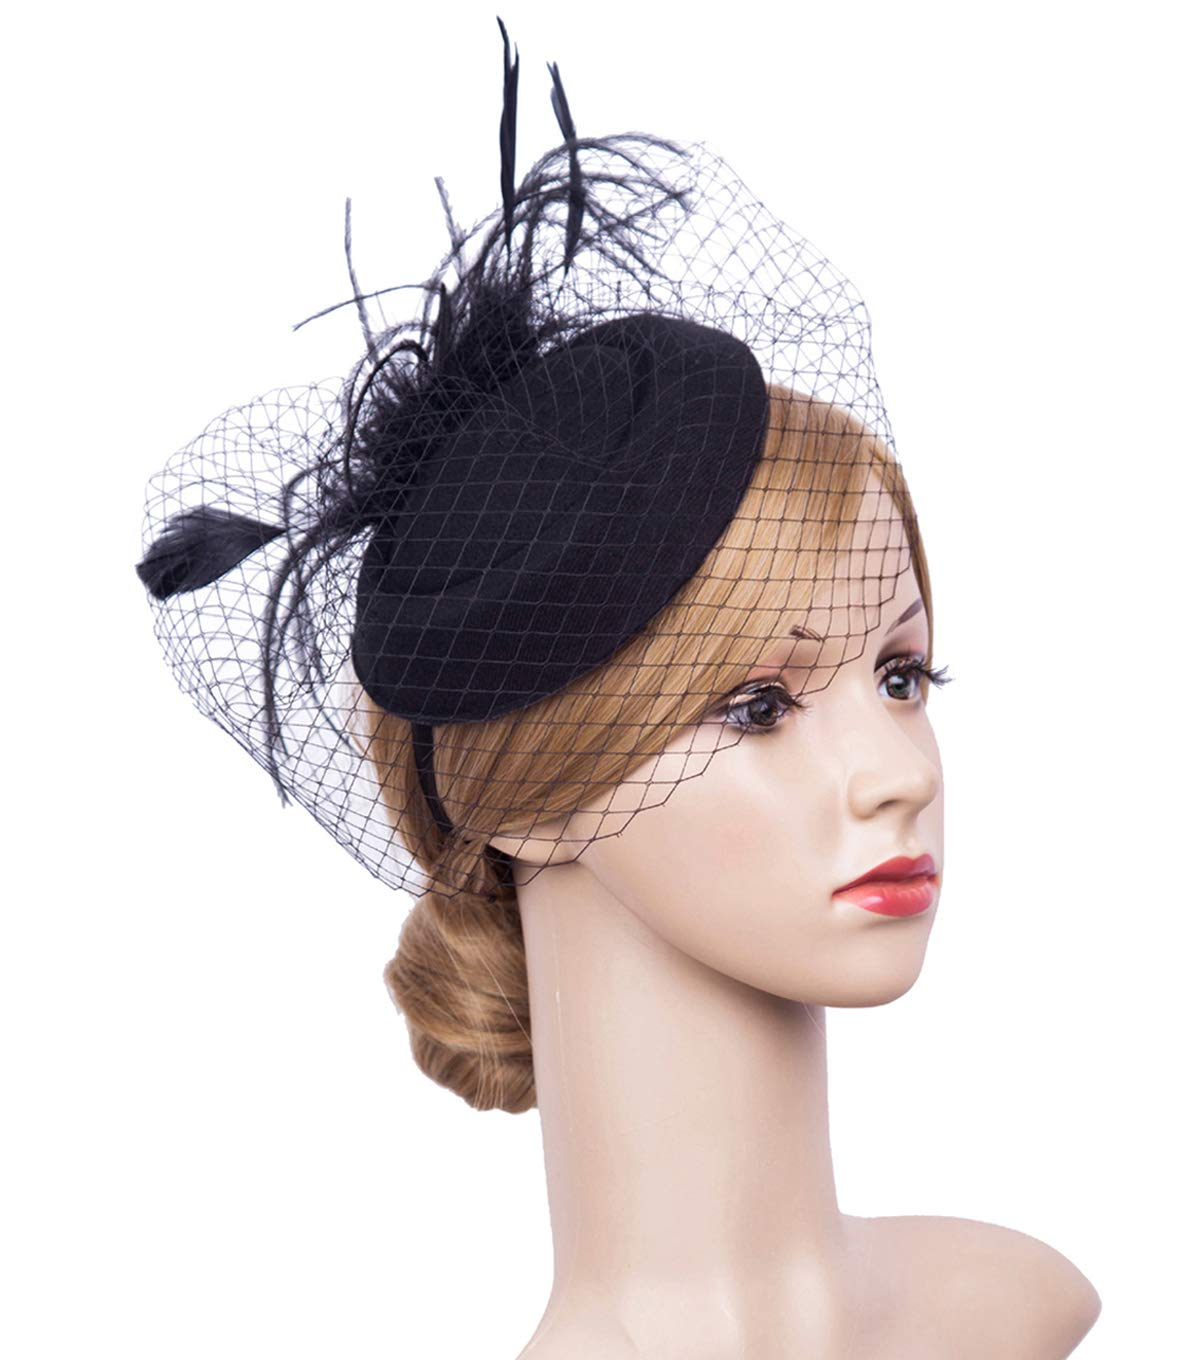 K.CLASSIC Fascinator Hair Clip Pillbox Hat Bowler Feather Flower Veil Wedding Party Hat (Black5)